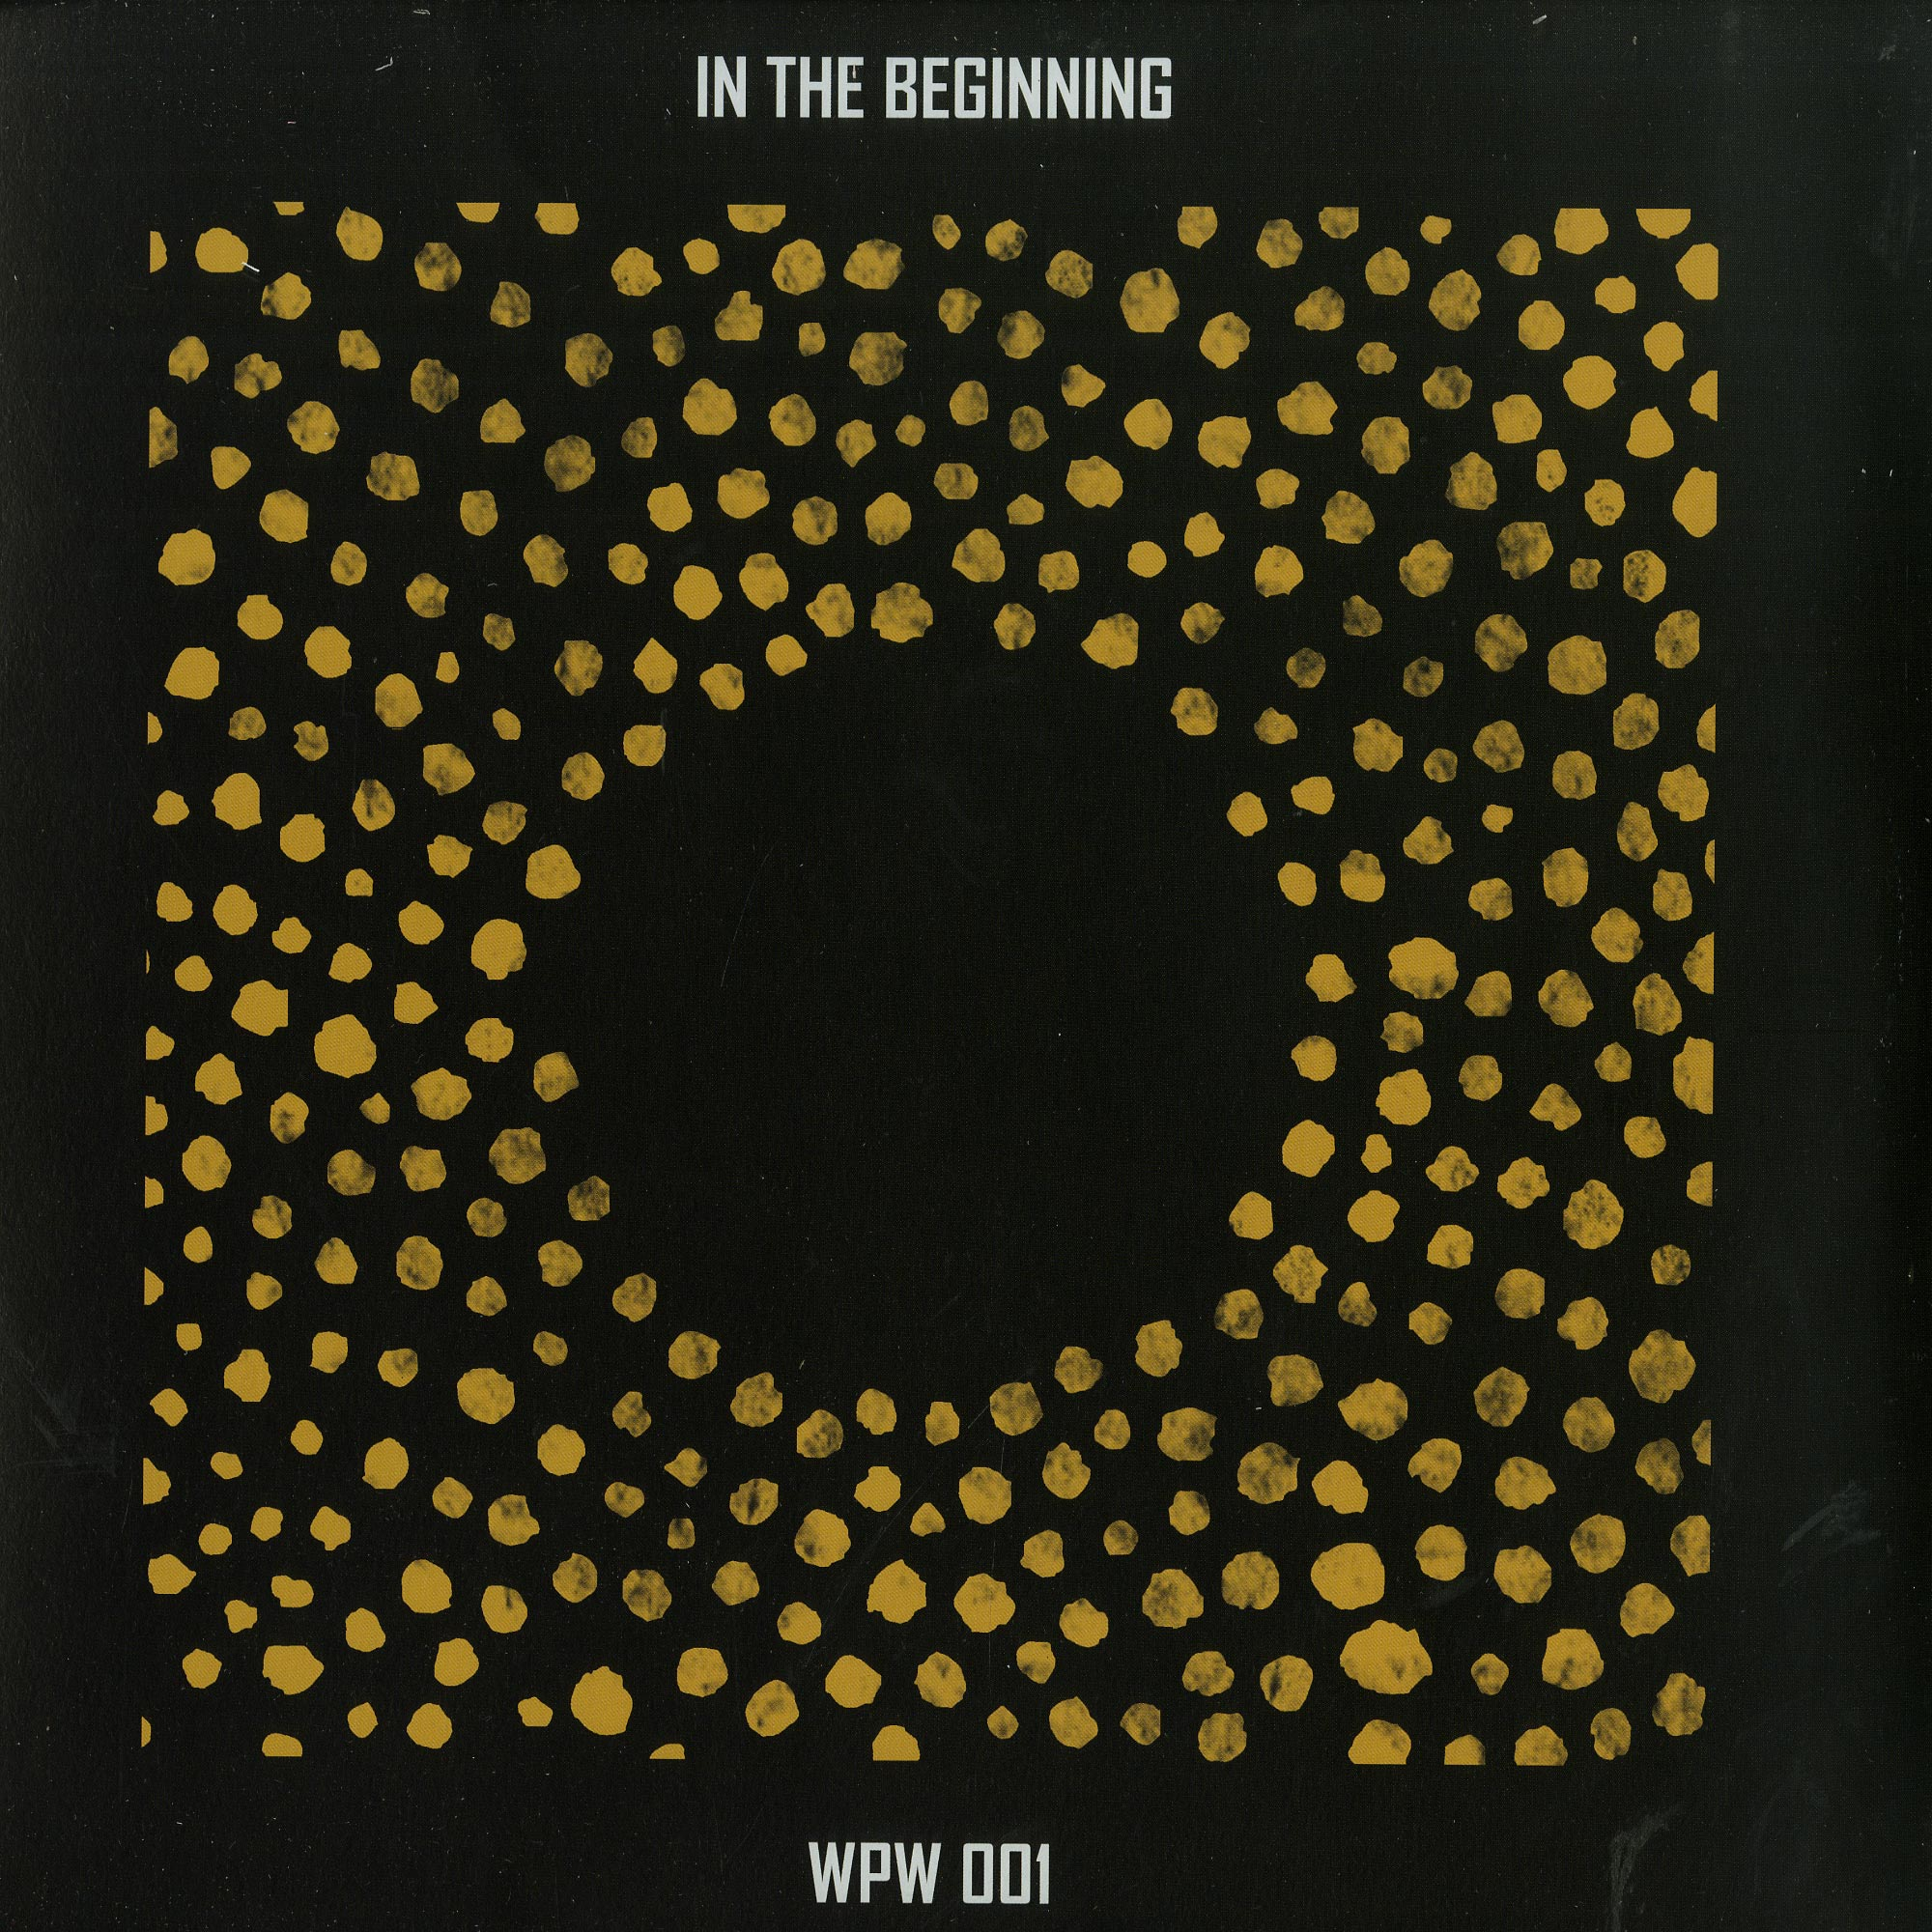 Giovanni Damico / Tomson - IN THE BEGINNING